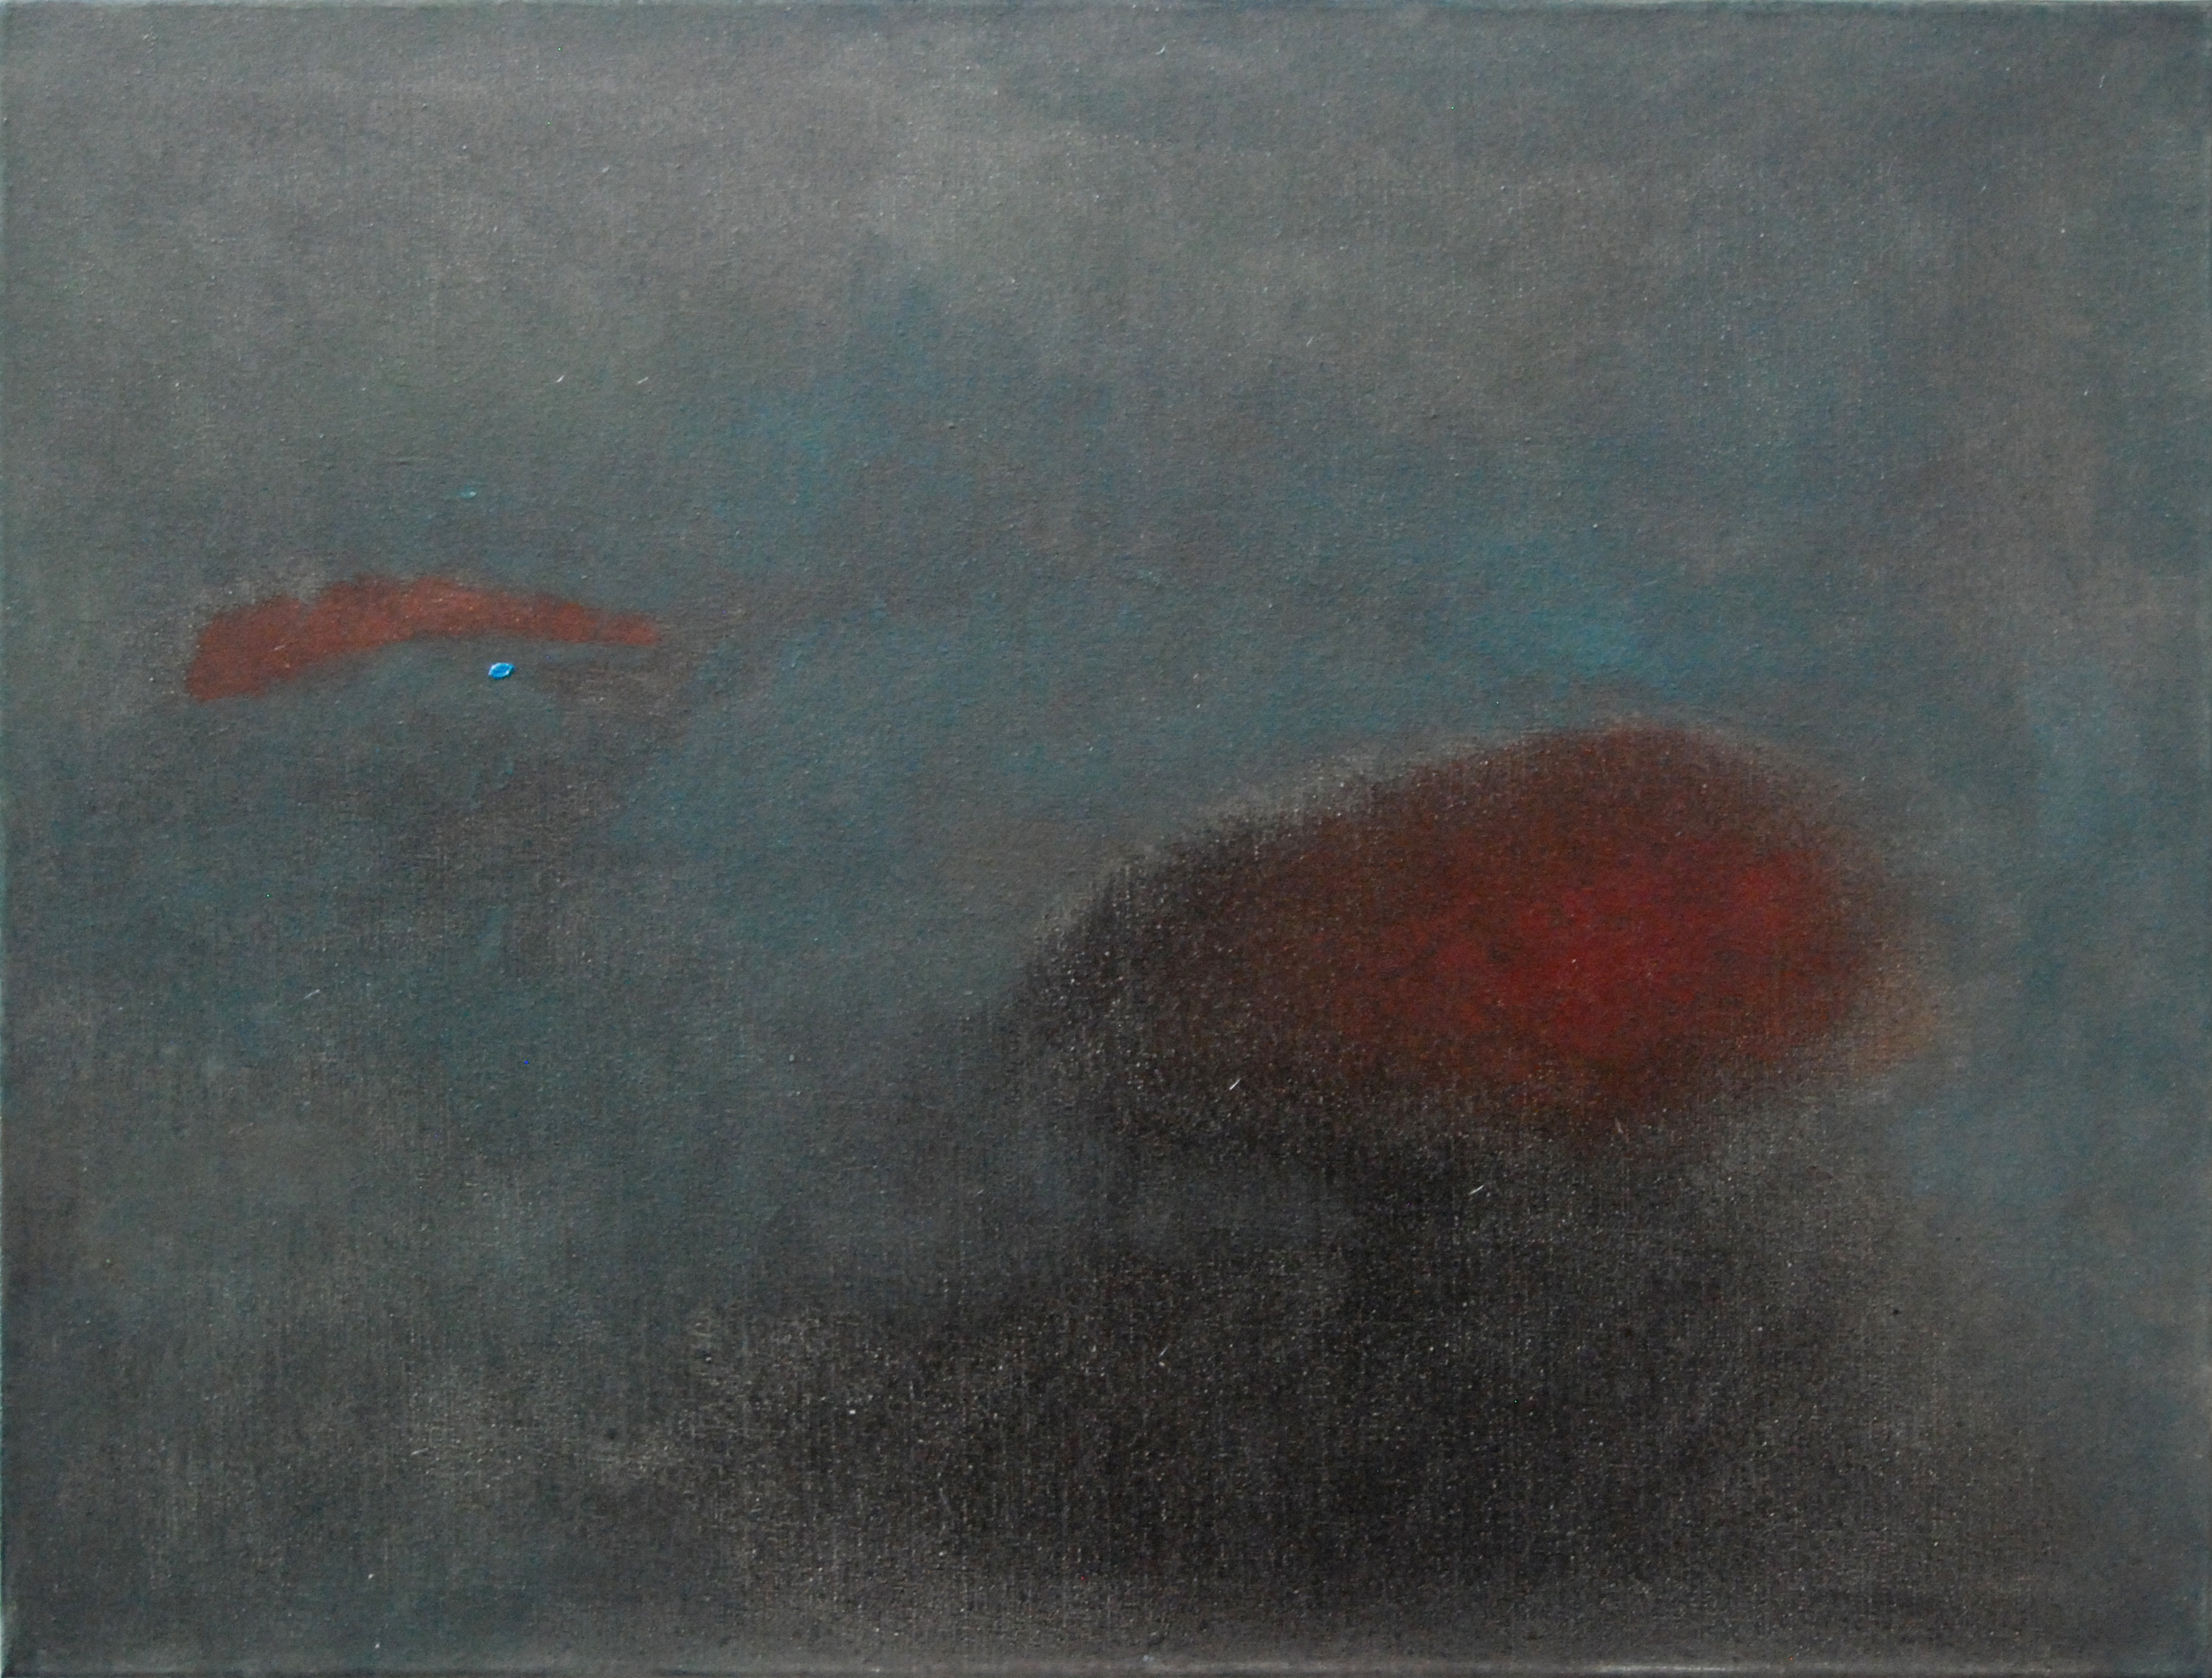 <em>You & me IV</em>. 2010. Oil on canvas. 80x100cm